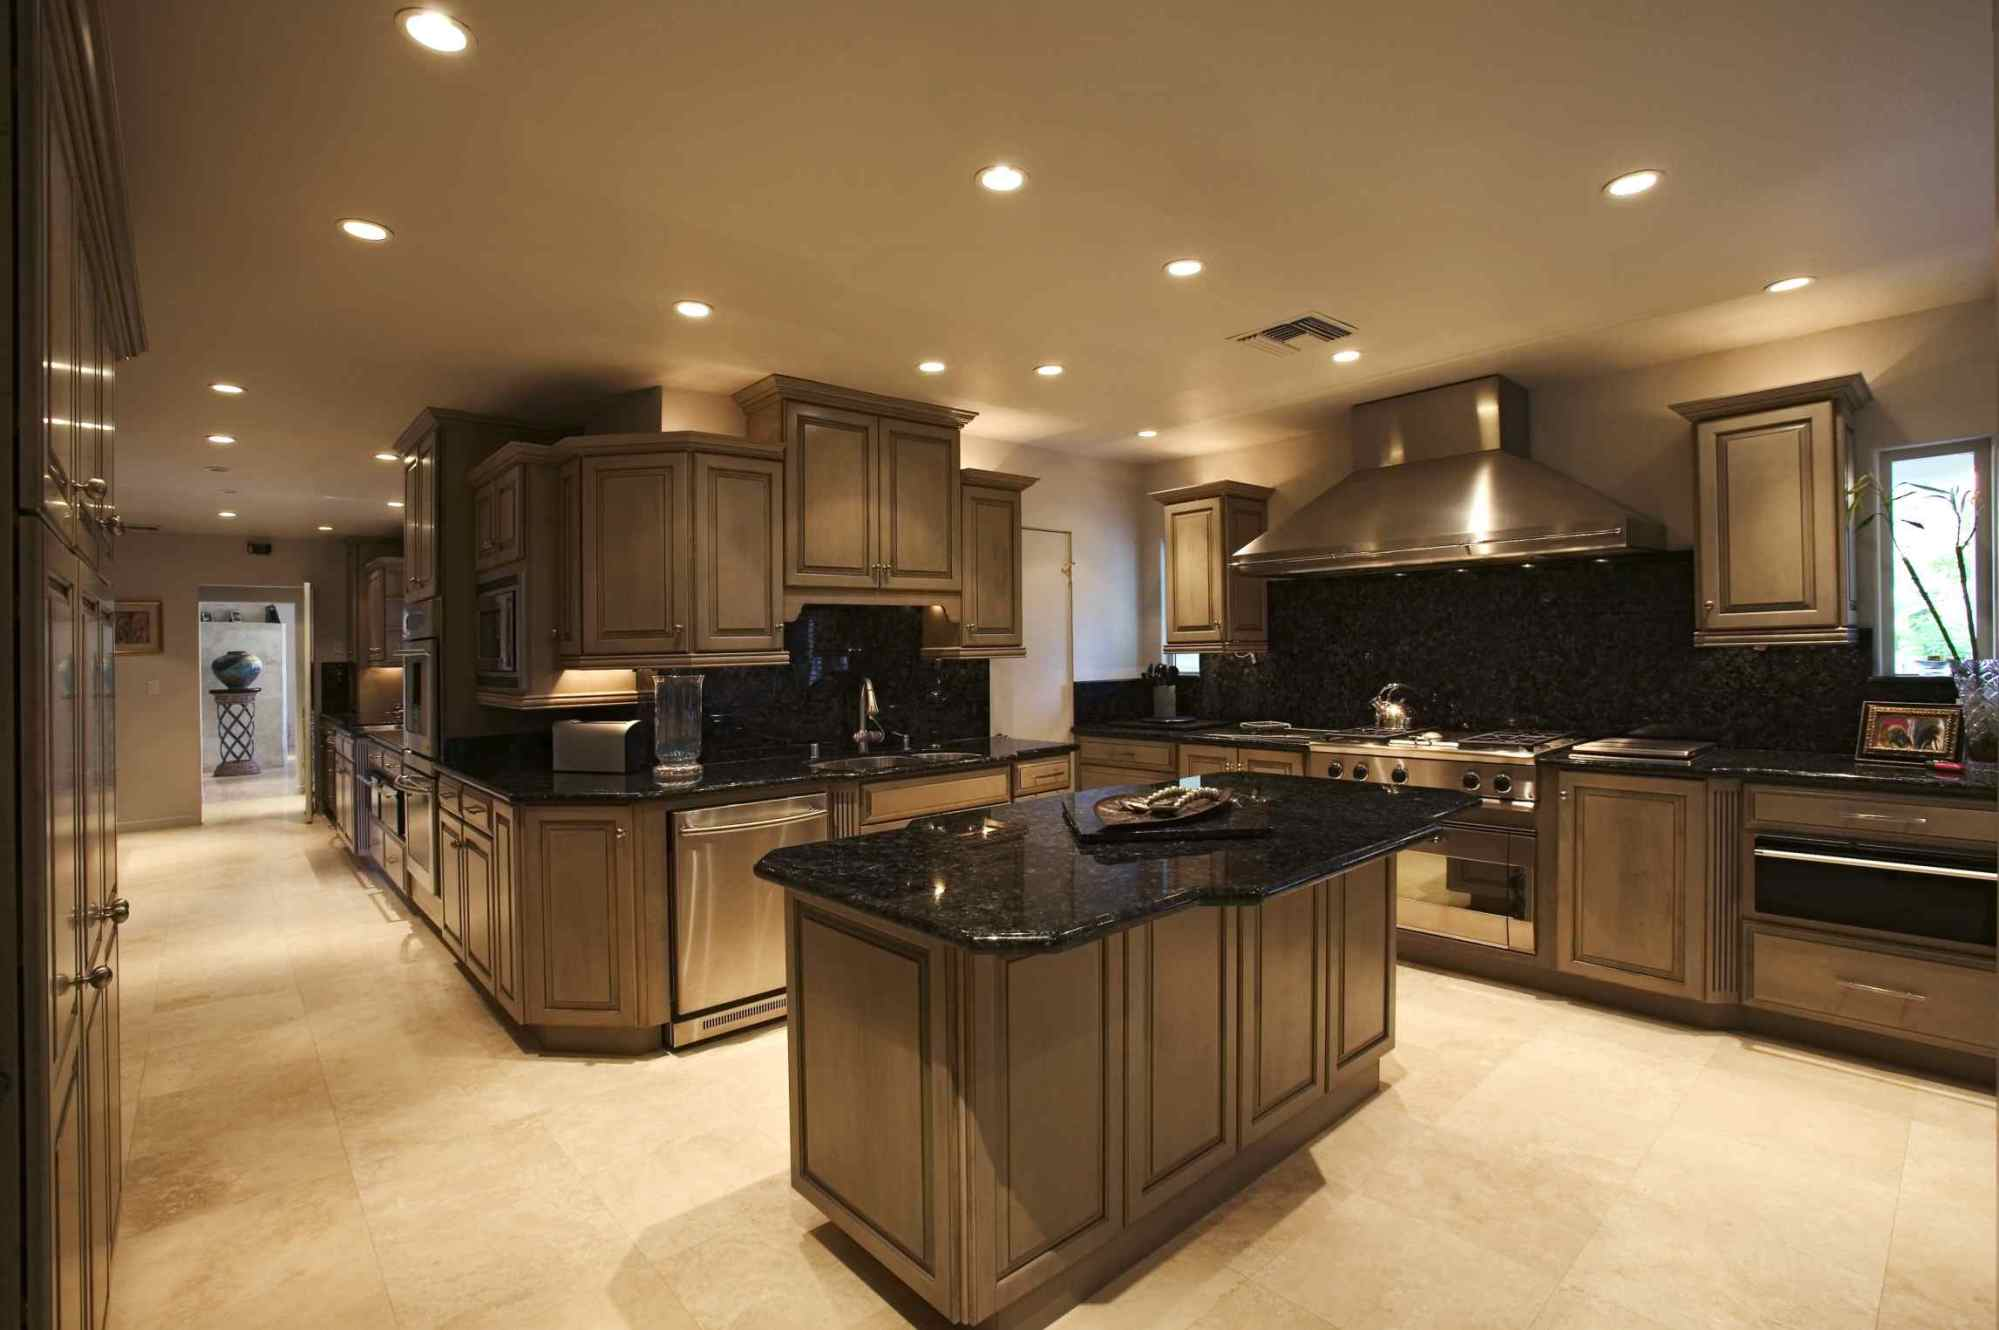 hight resolution of wiring a kitchen ceiling light